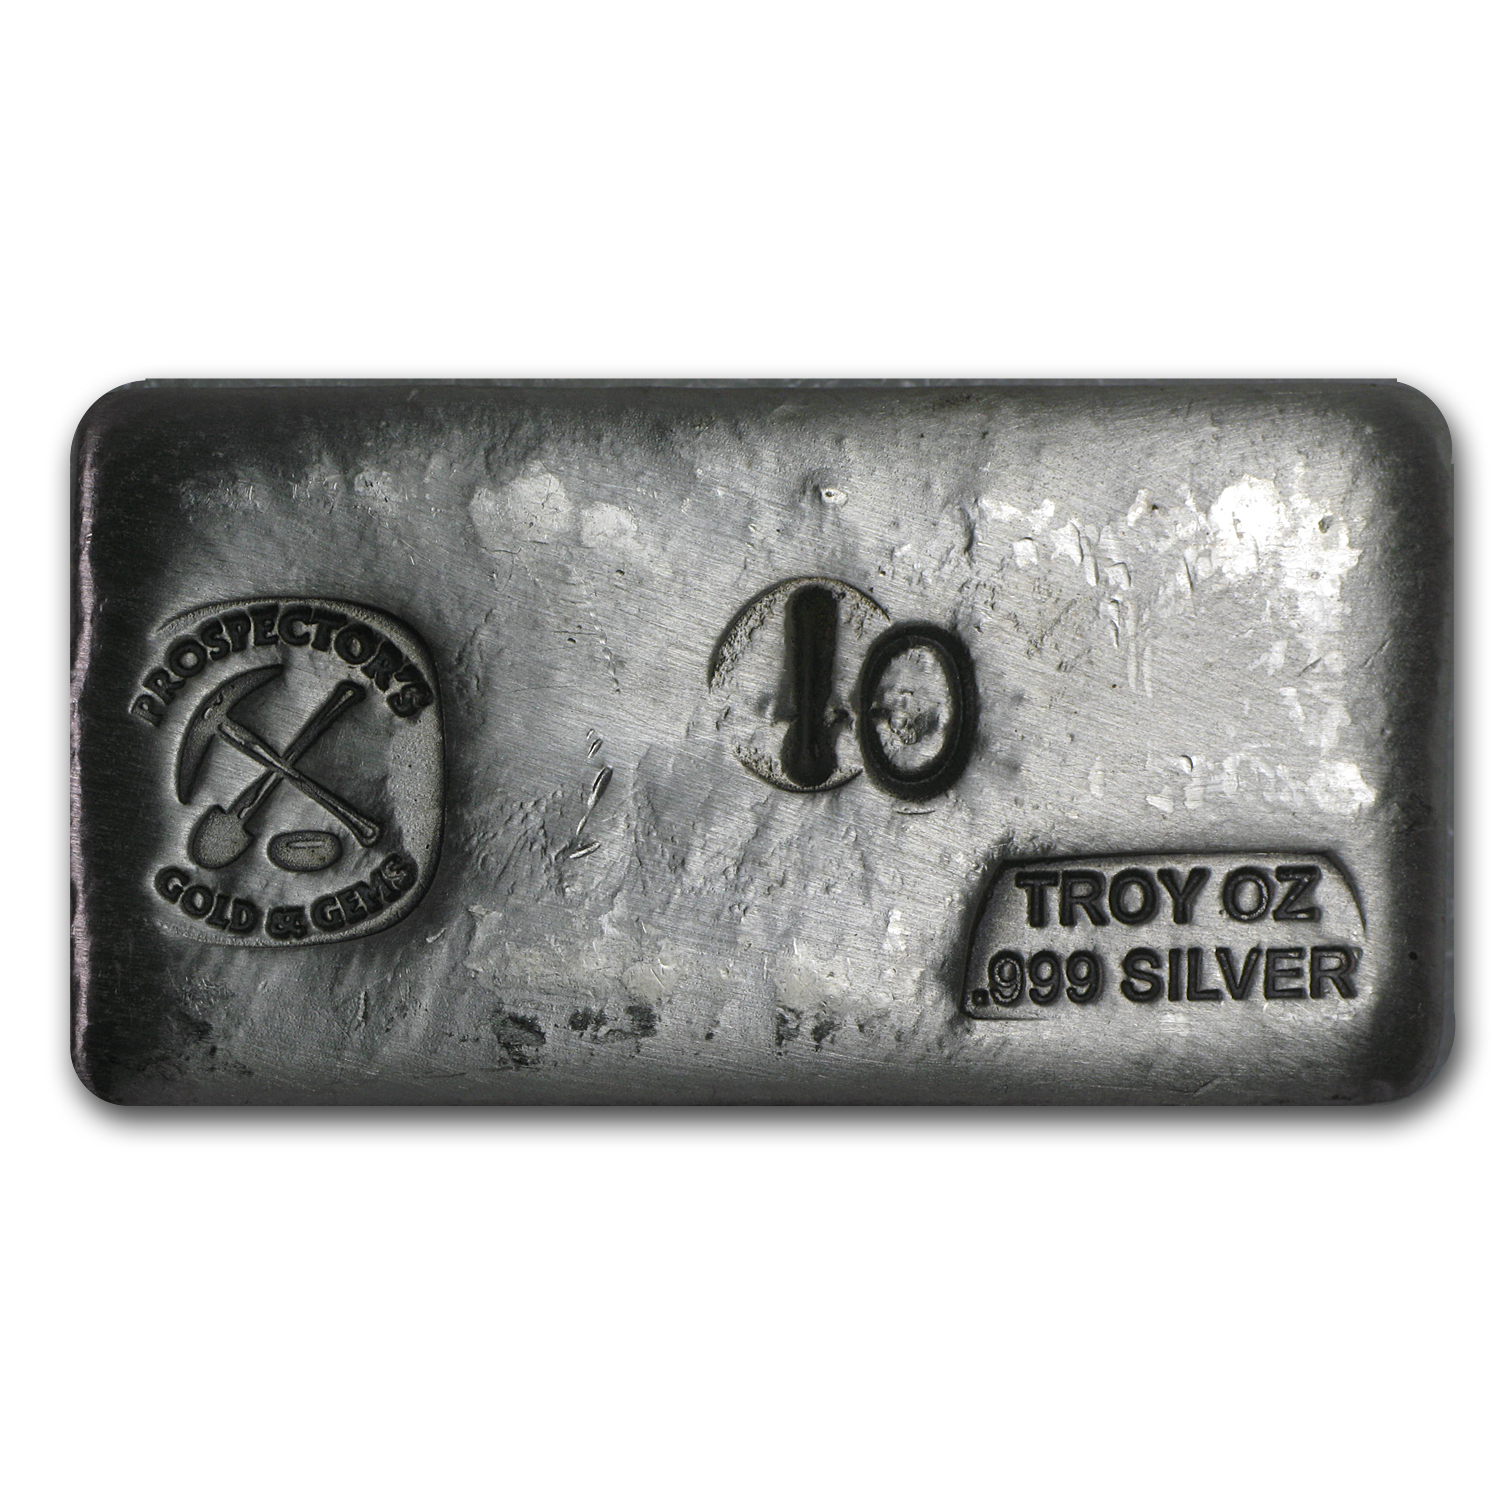 10 oz Silver Bars - Prospector's Gold & Gems